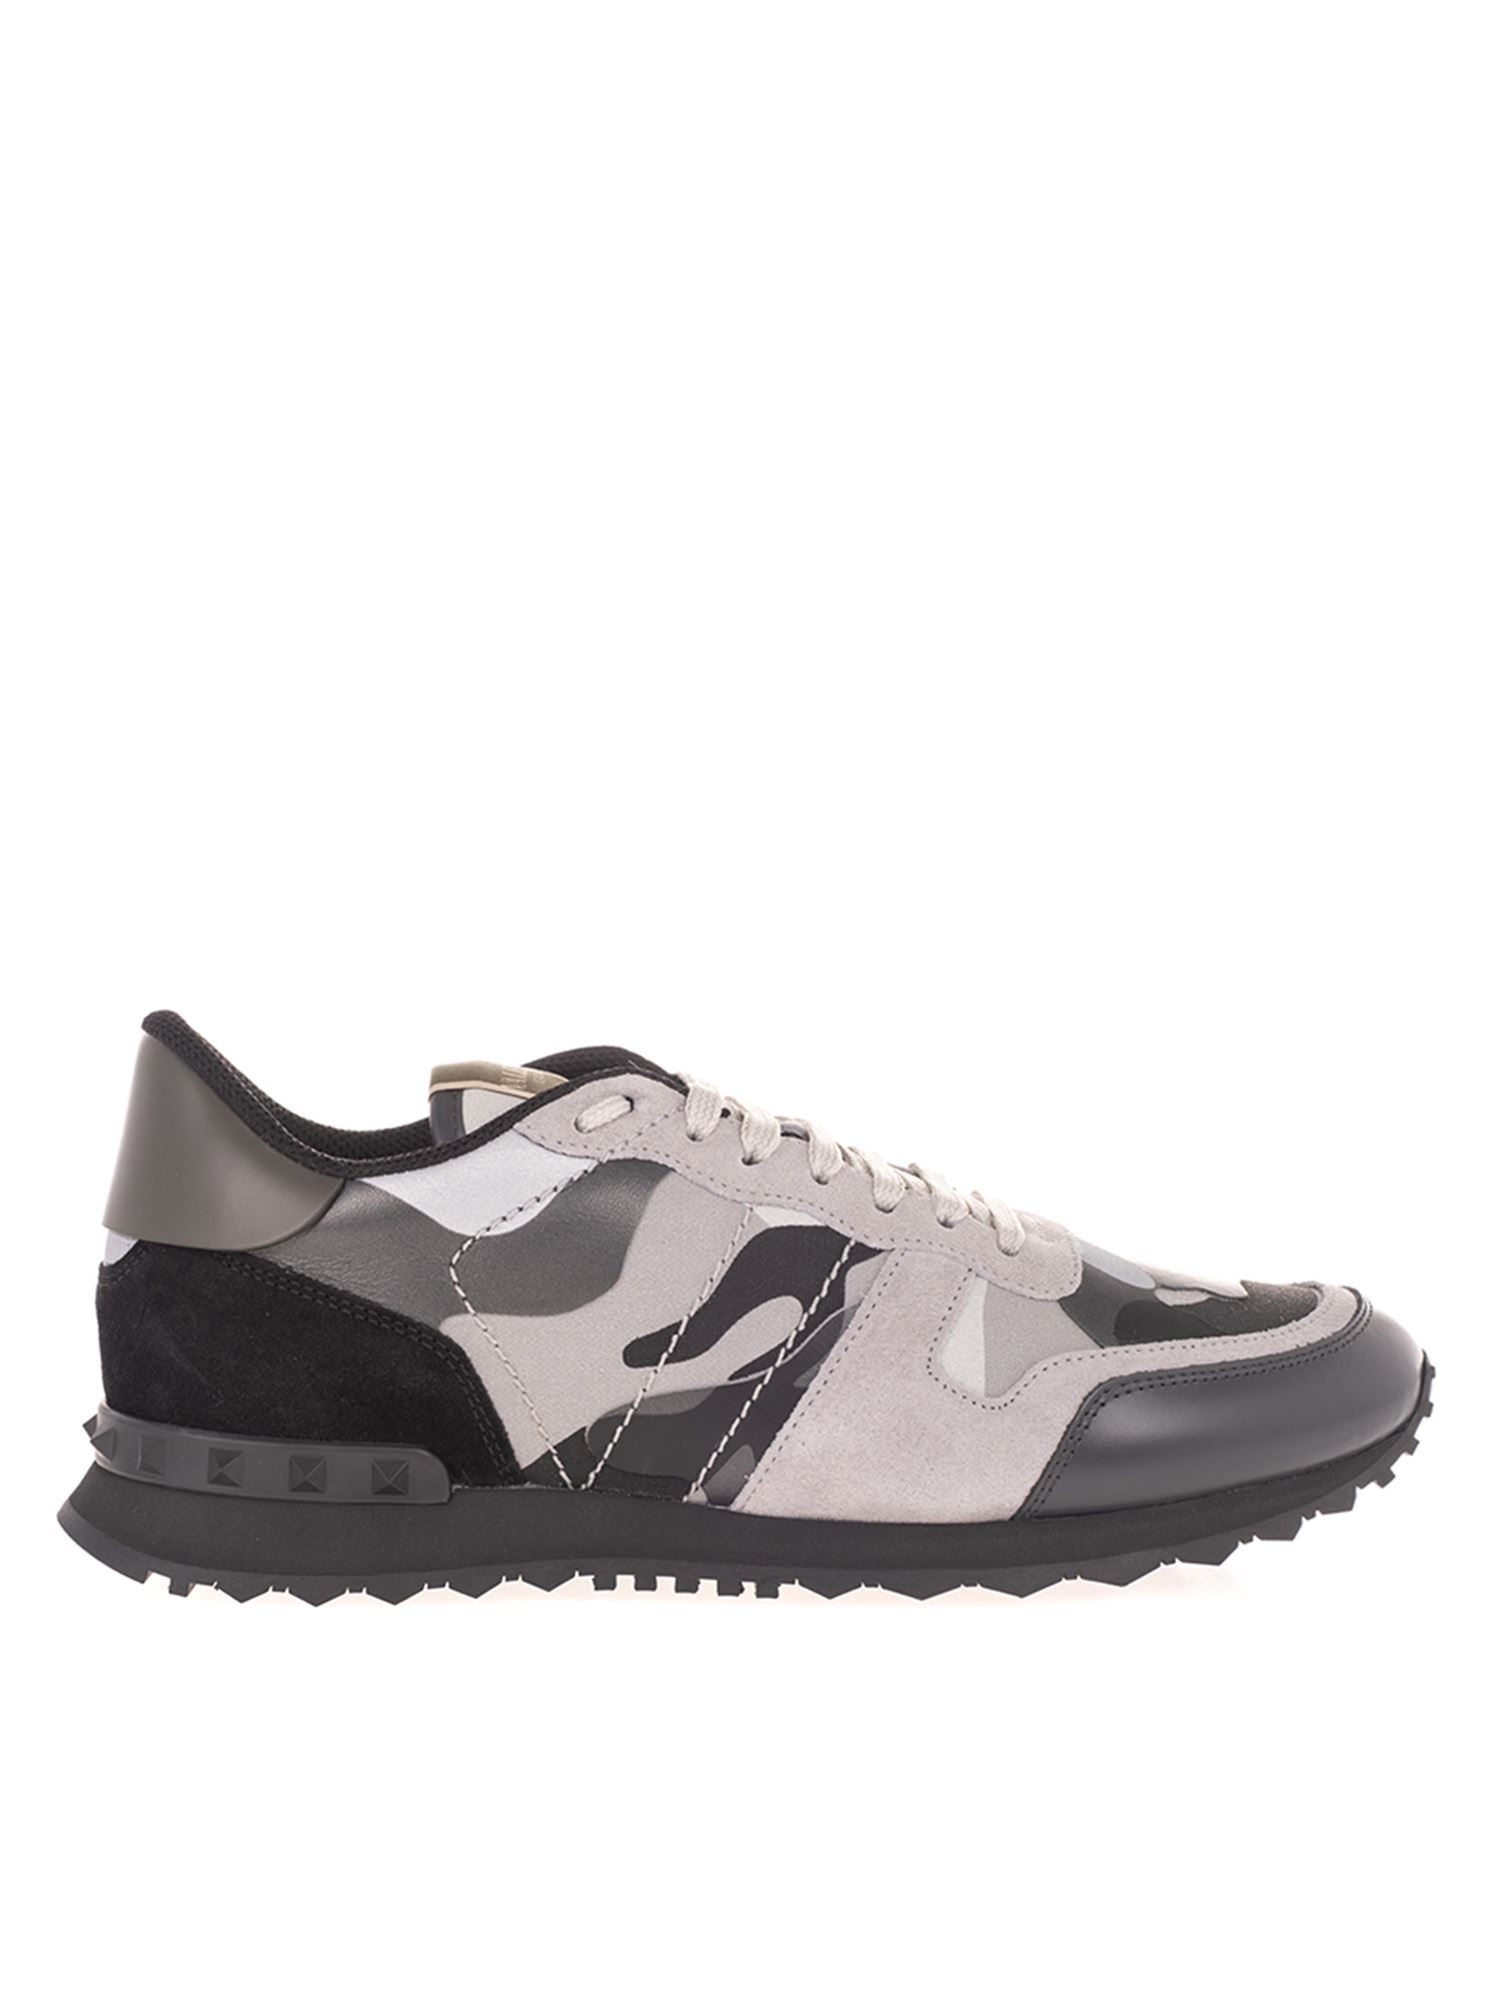 Valentino ROCKRUNNER CAMOUFLAGE SNEAKERS IN GREY